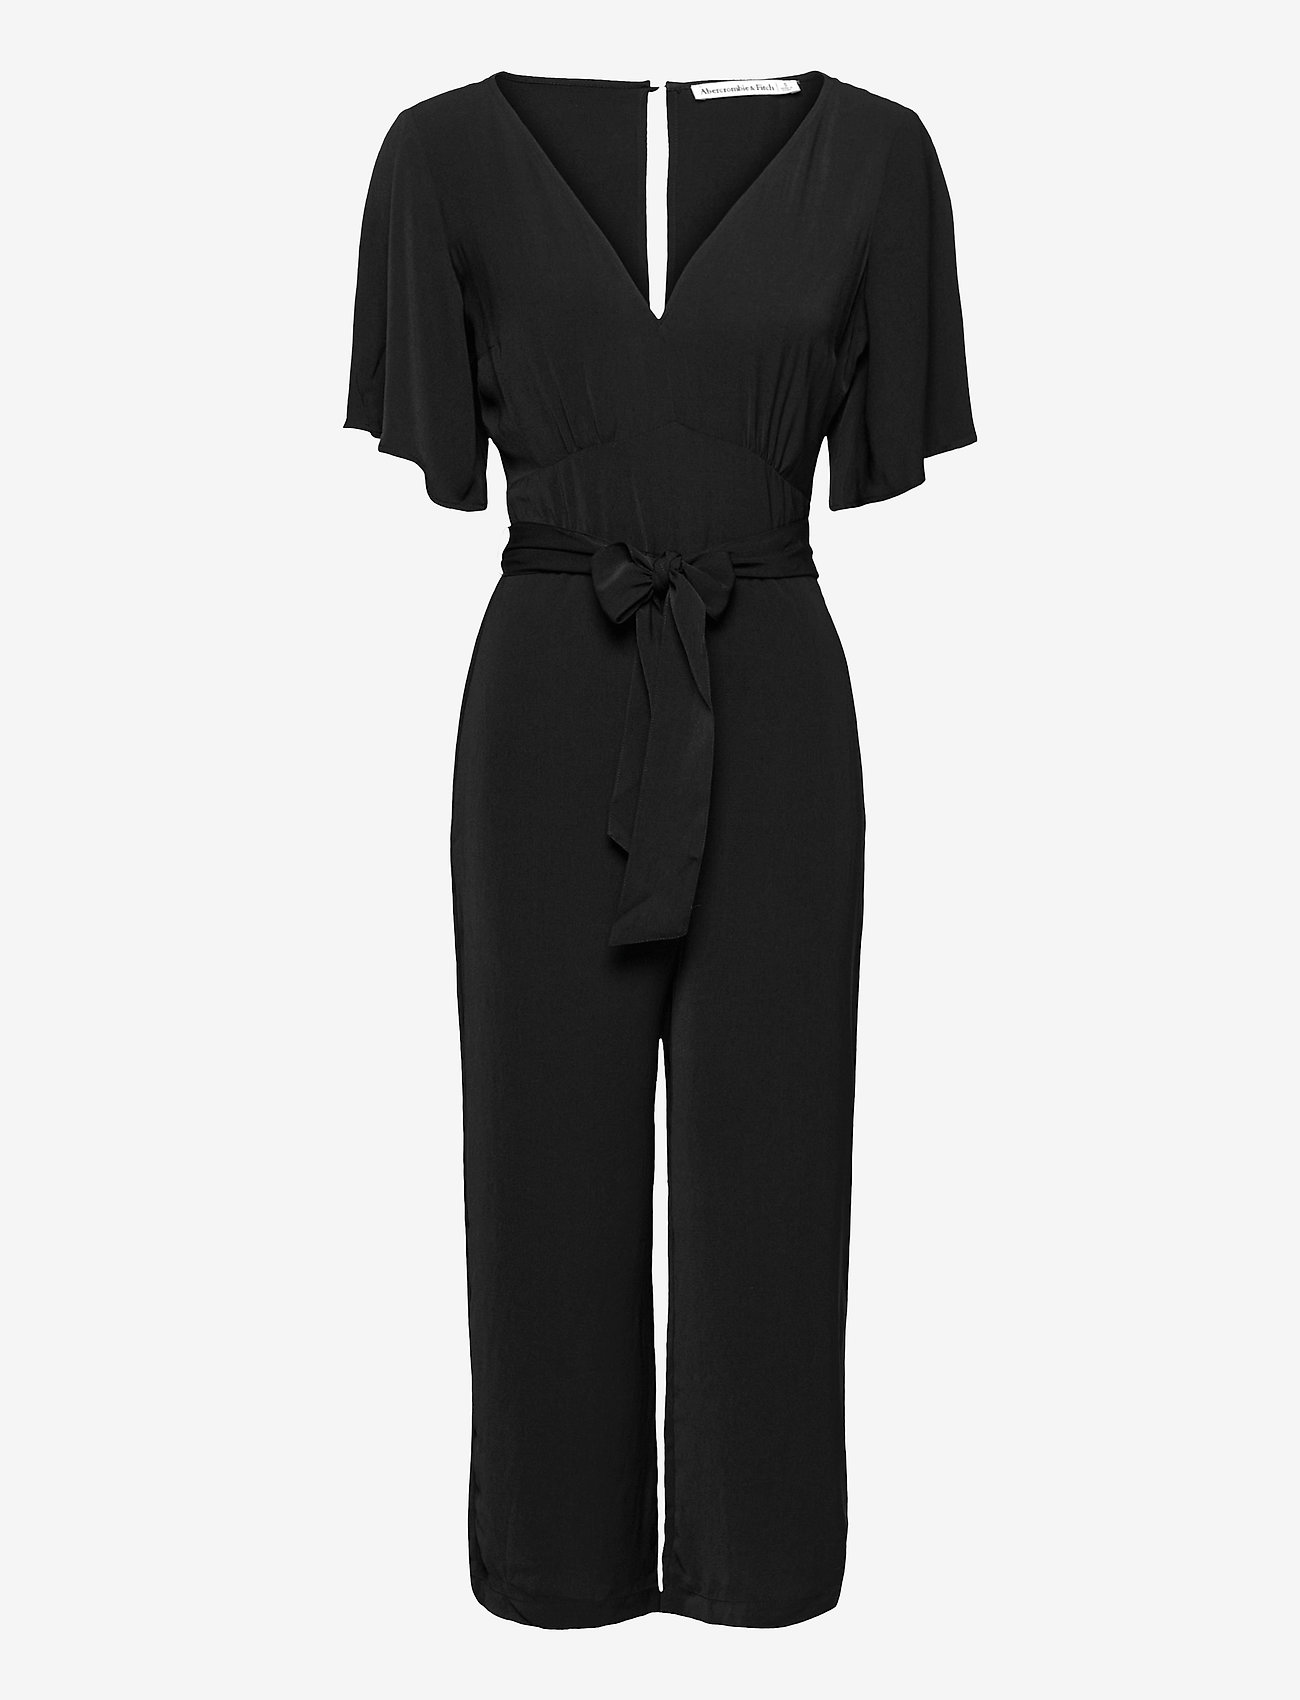 Abercrombie & Fitch - ANF WOMENS DRESSES - jumpsuits - black dd - 0